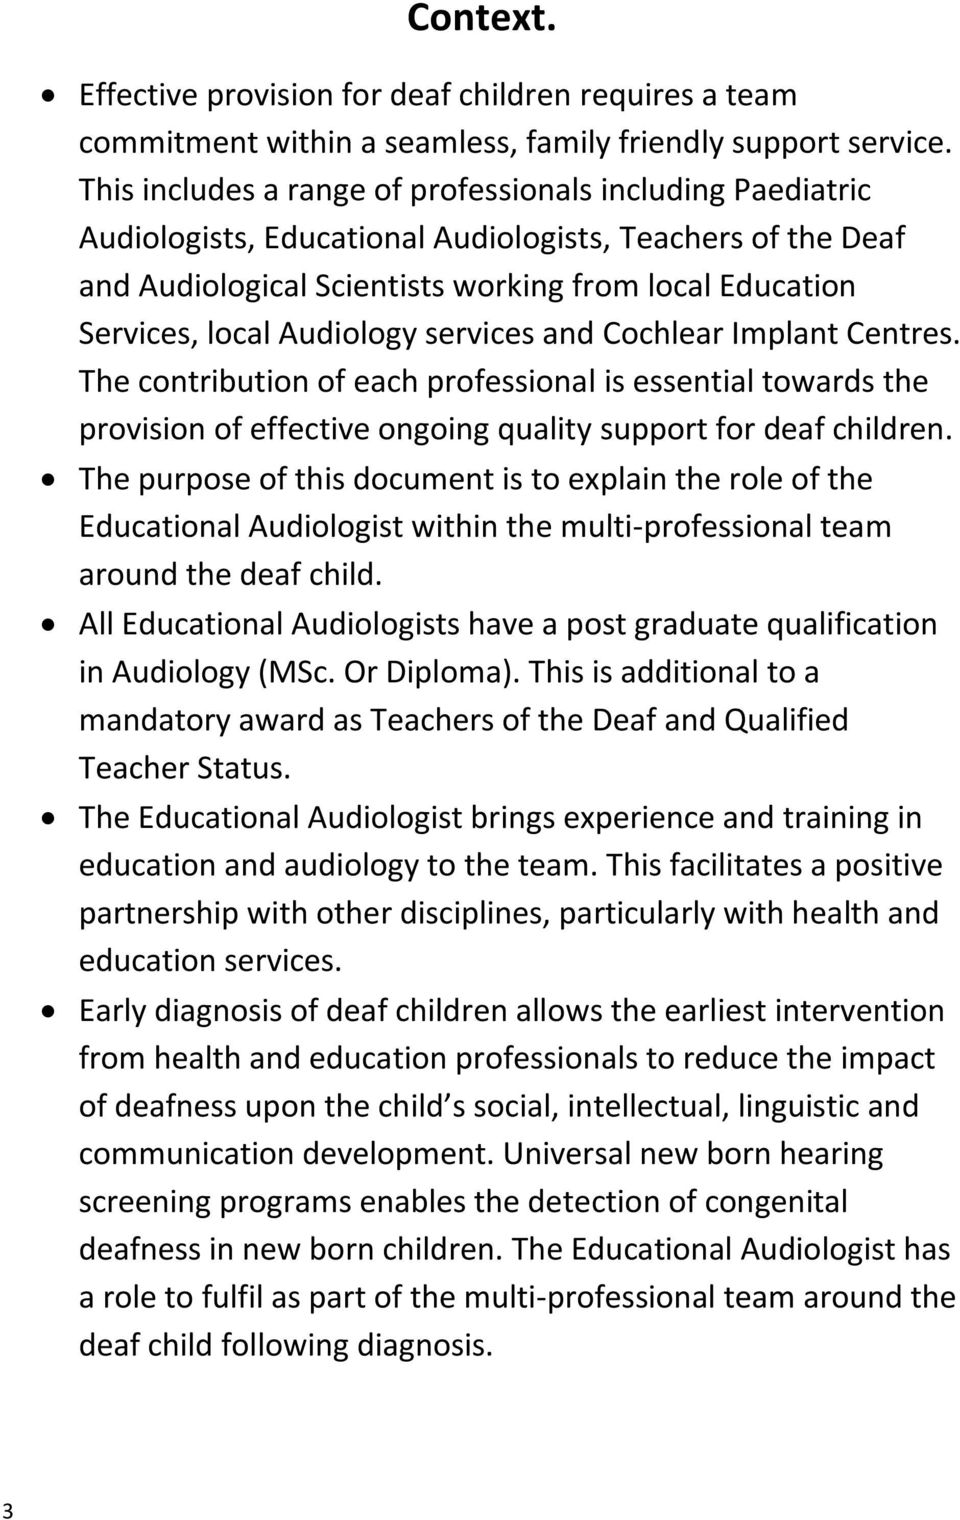 Audiology services and Cochlear Implant Centres. The contribution of each professional is essential towards the provision of effective ongoing quality support for deaf children.